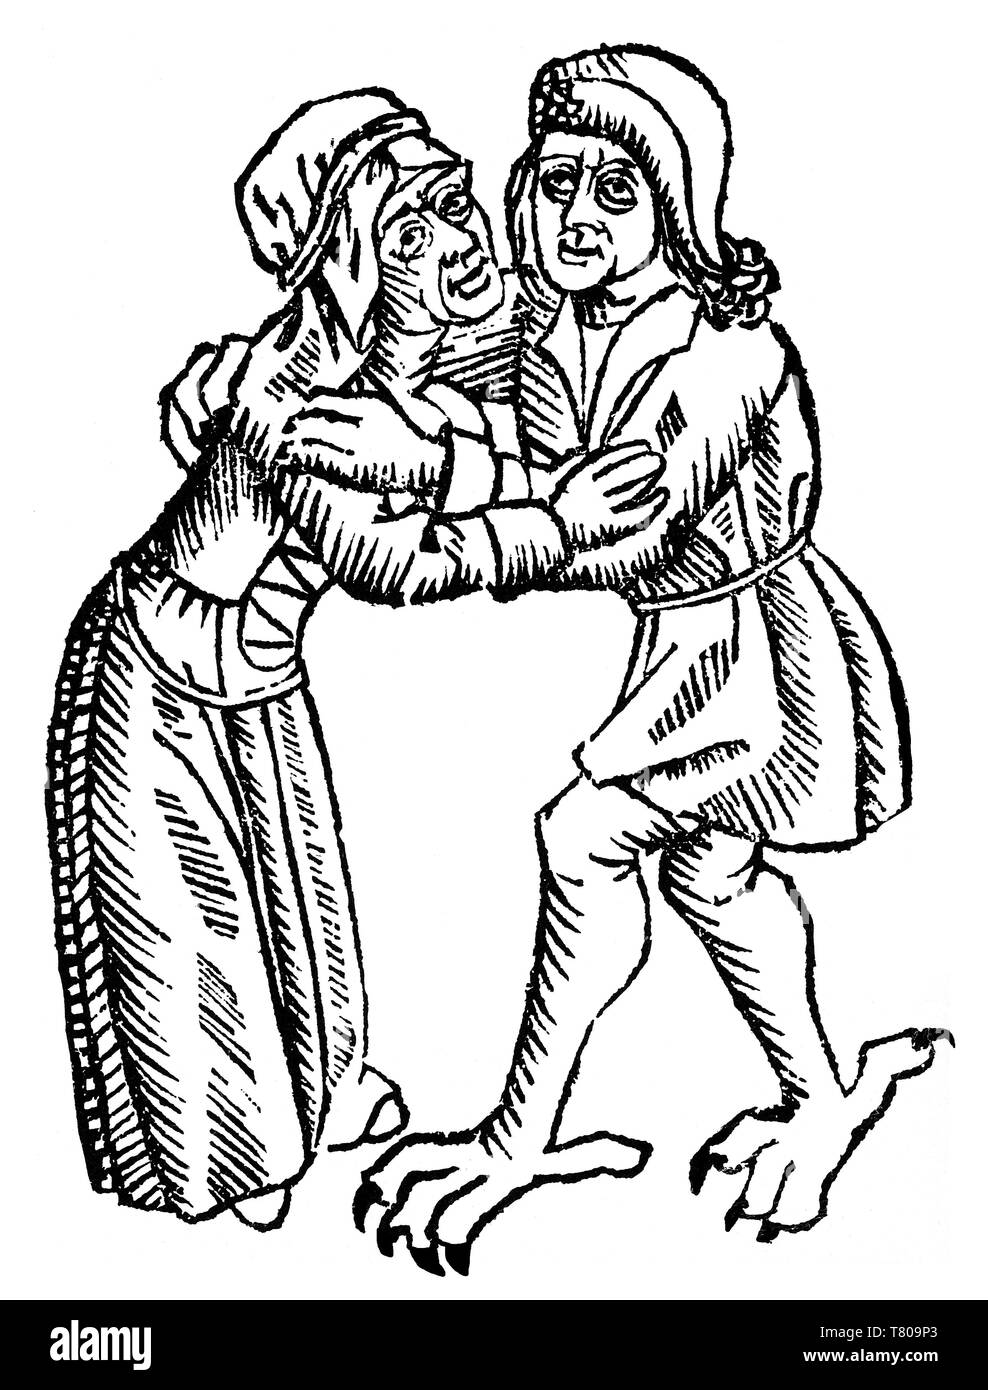 Witch Embraces Claw-footed Devil, 1489 - Stock Image